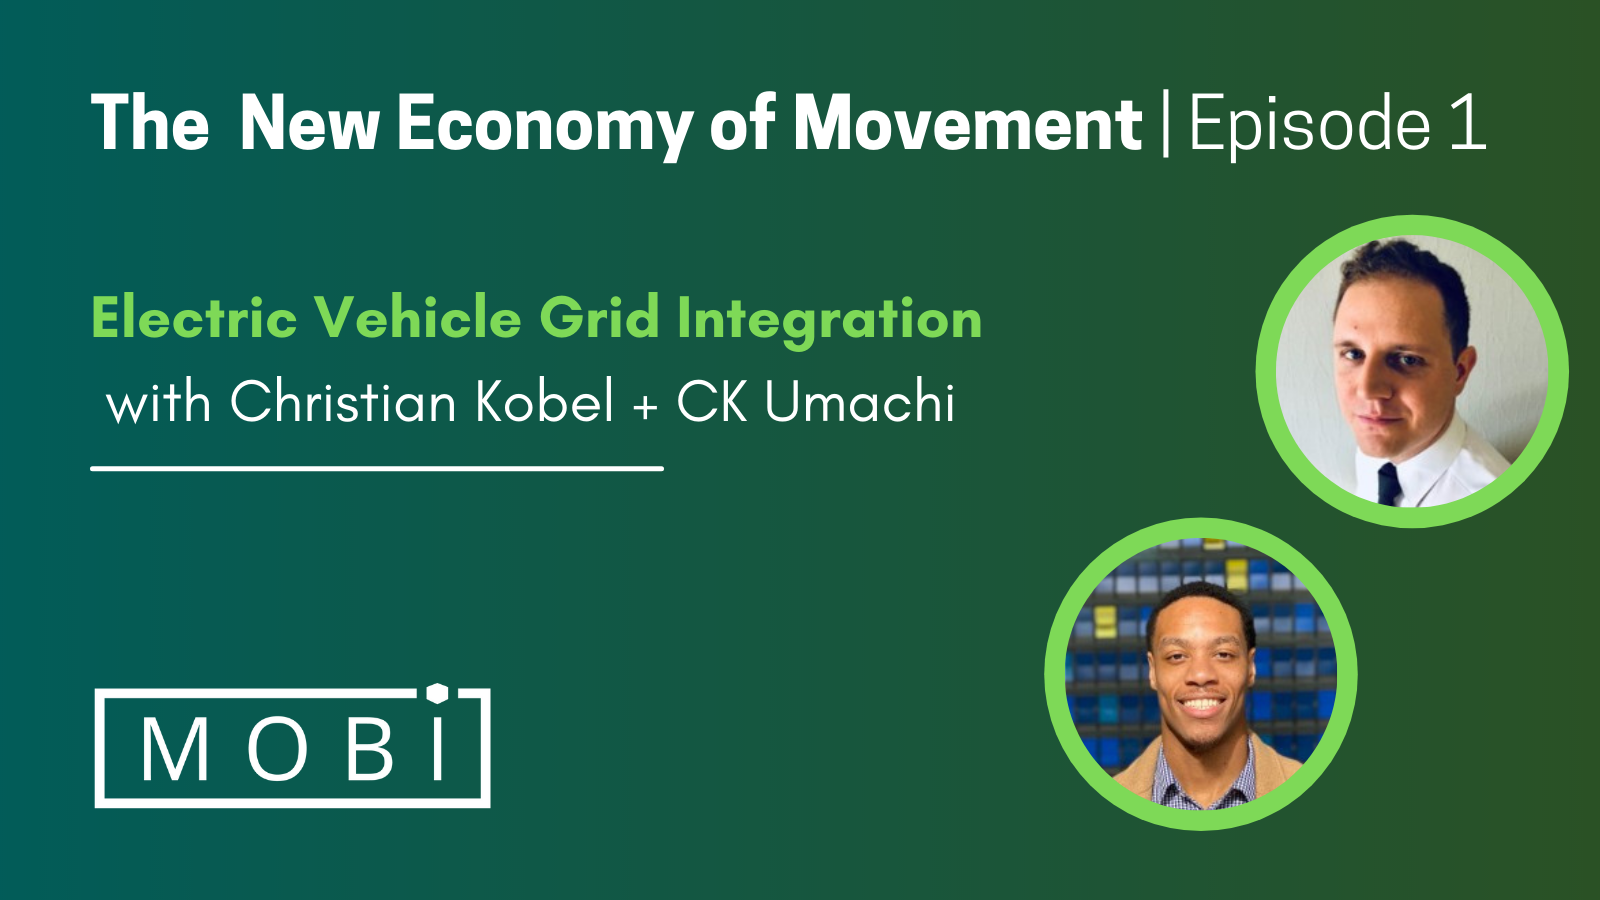 Electric Vehicle Grid Integration podcast with Christian Kobel and CK Umachi